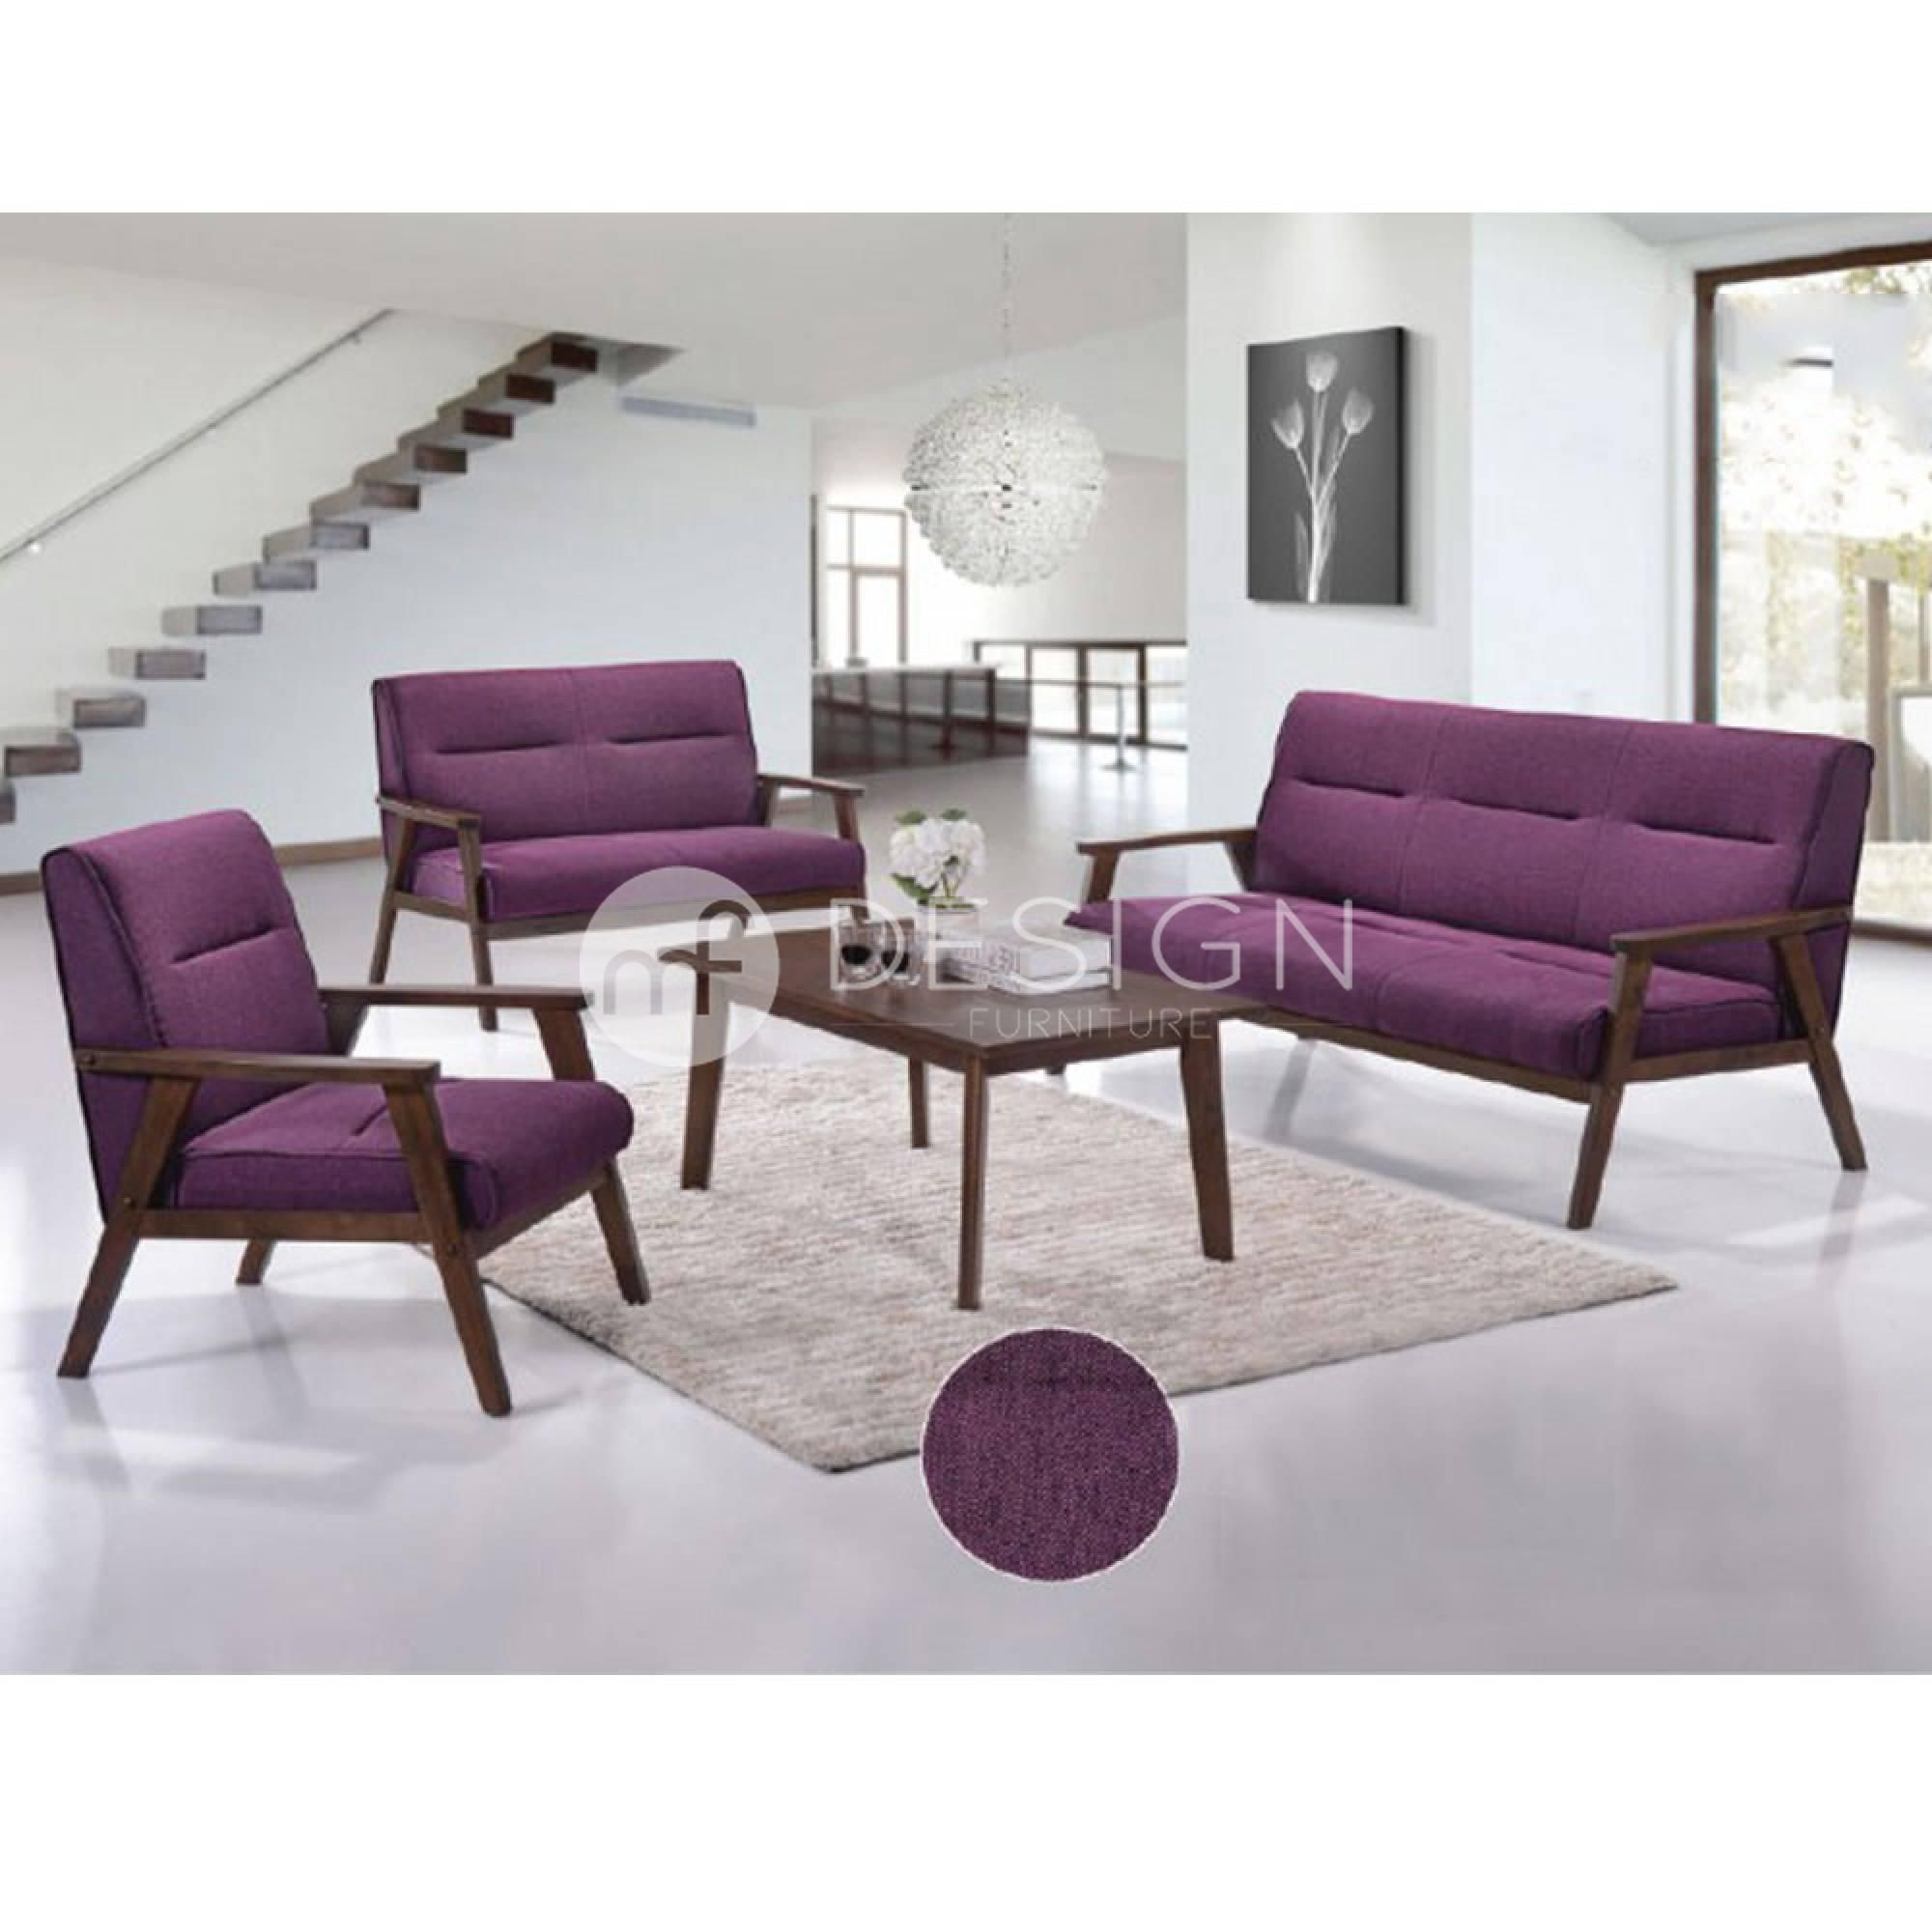 NEST 1 2 3 ANTIQUE SOFA SET PURPLE